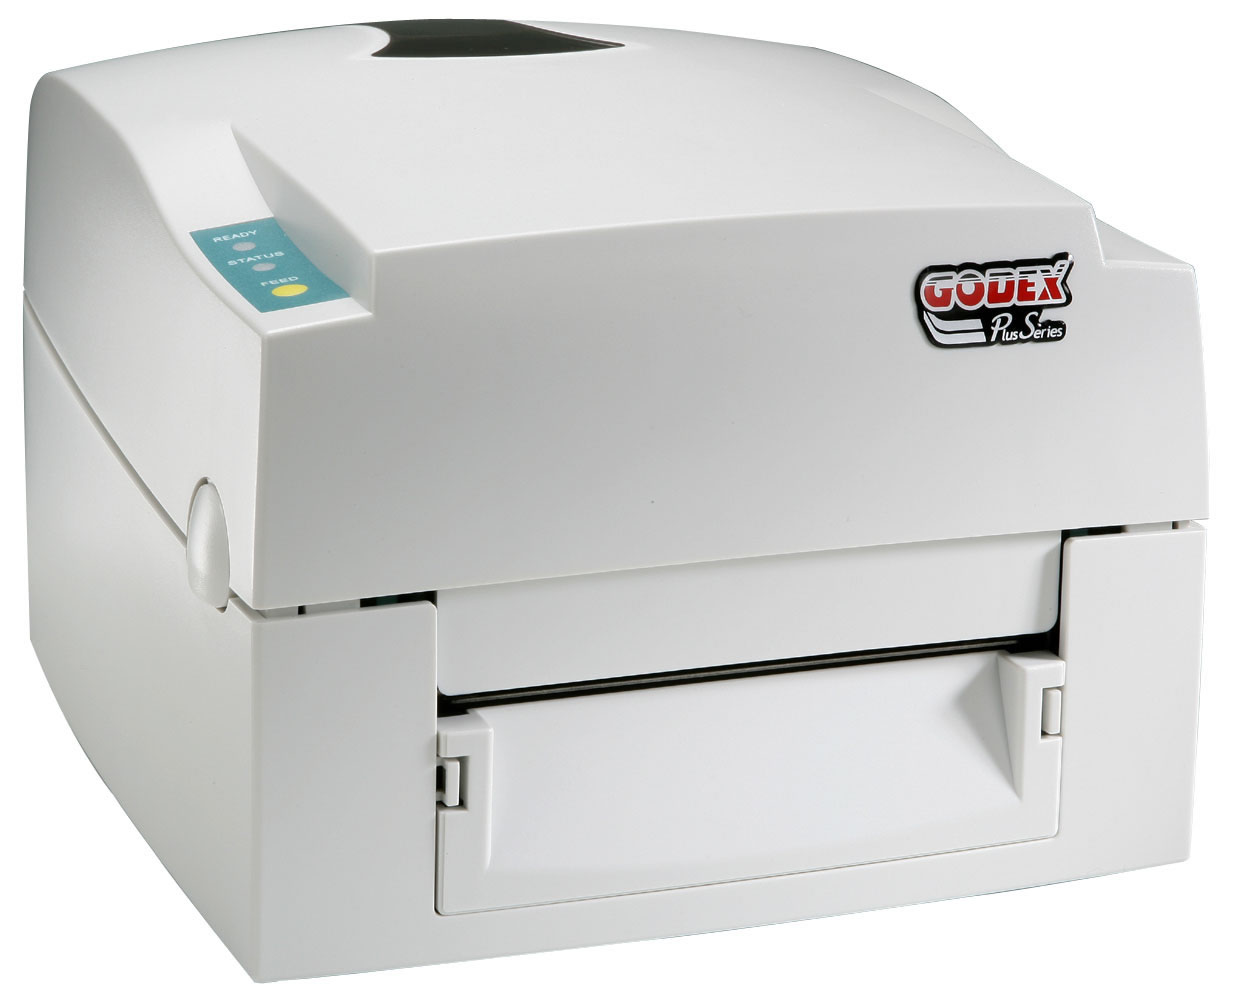 GODEX EZ-1100 PLUS PRINTER DRIVERS FOR WINDOWS